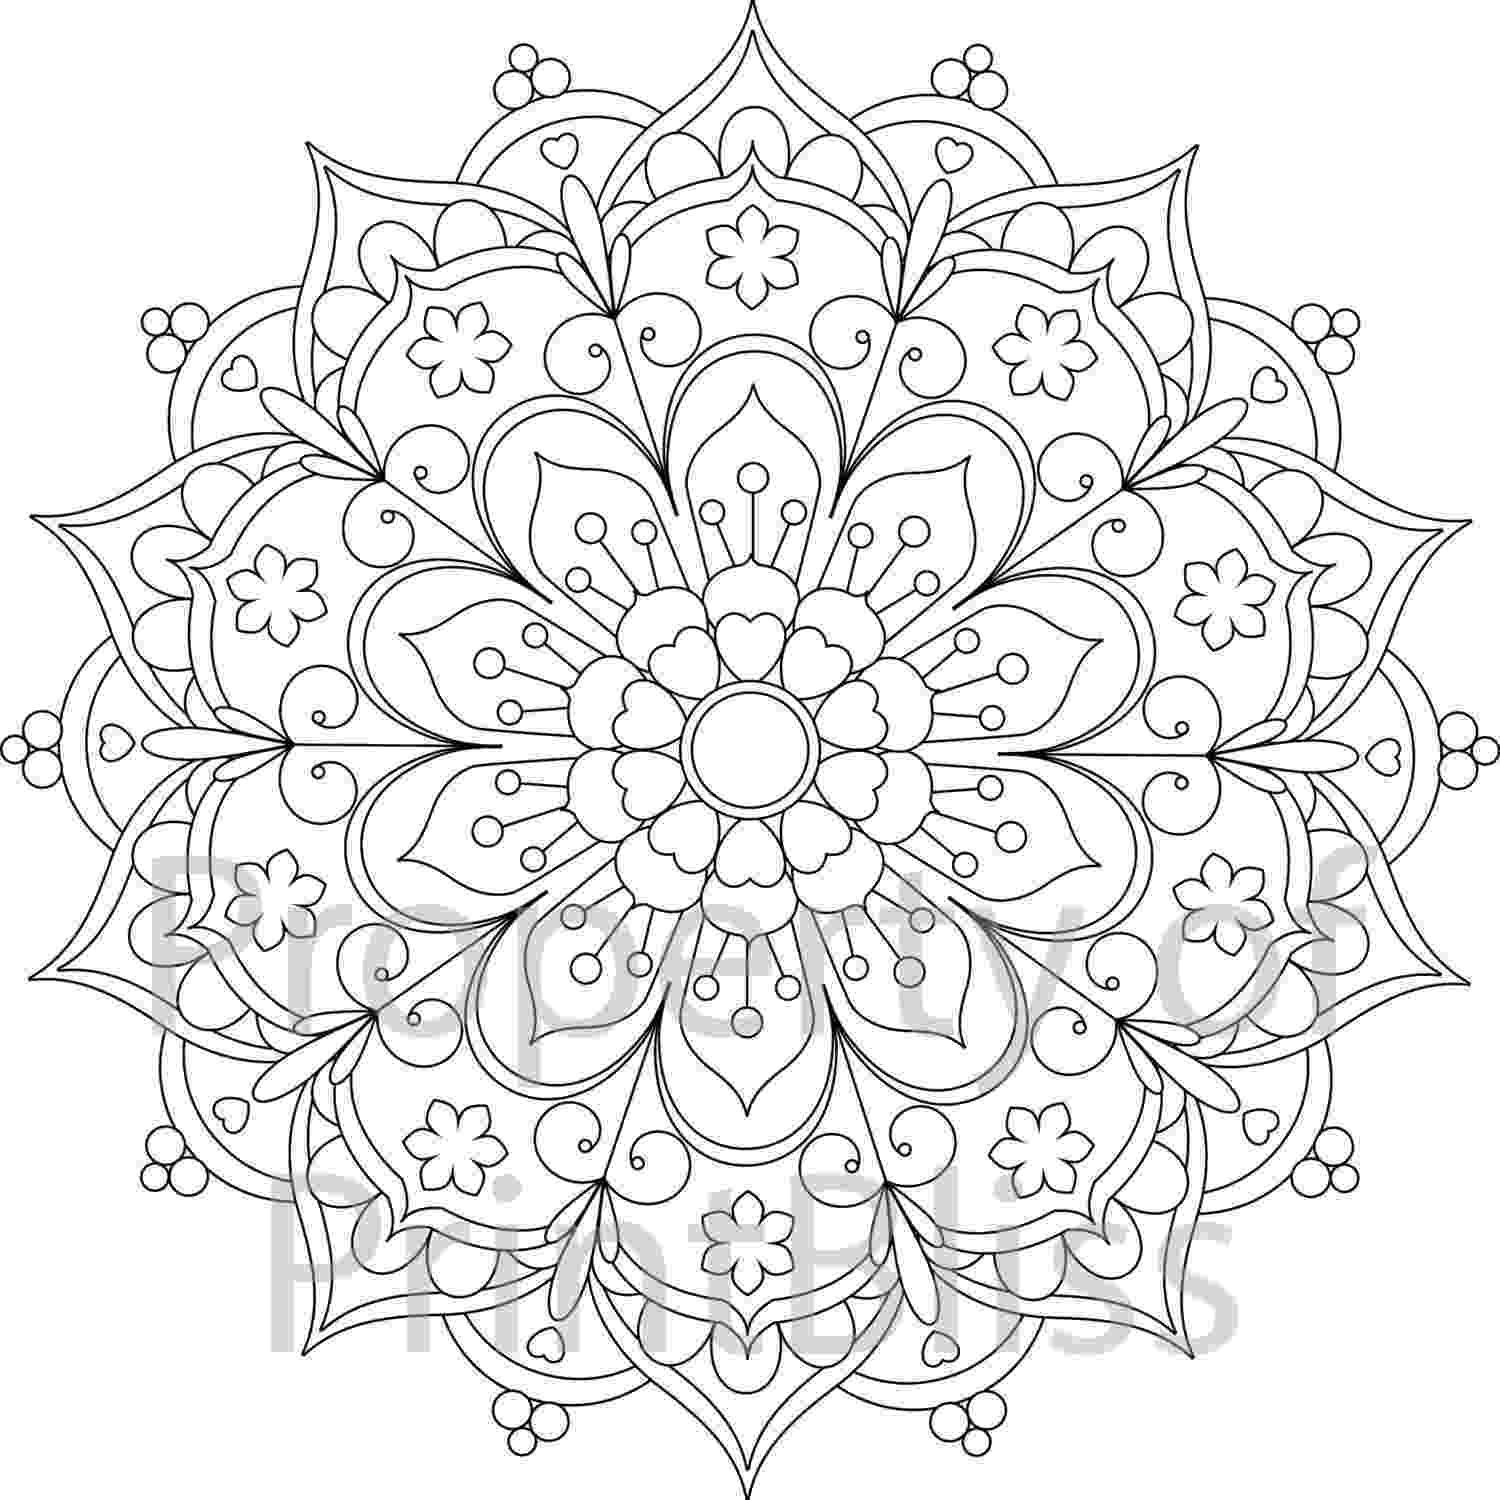 printable flower coloring pages for adults detailed flower coloring pages to download and print for free for printable coloring flower pages adults